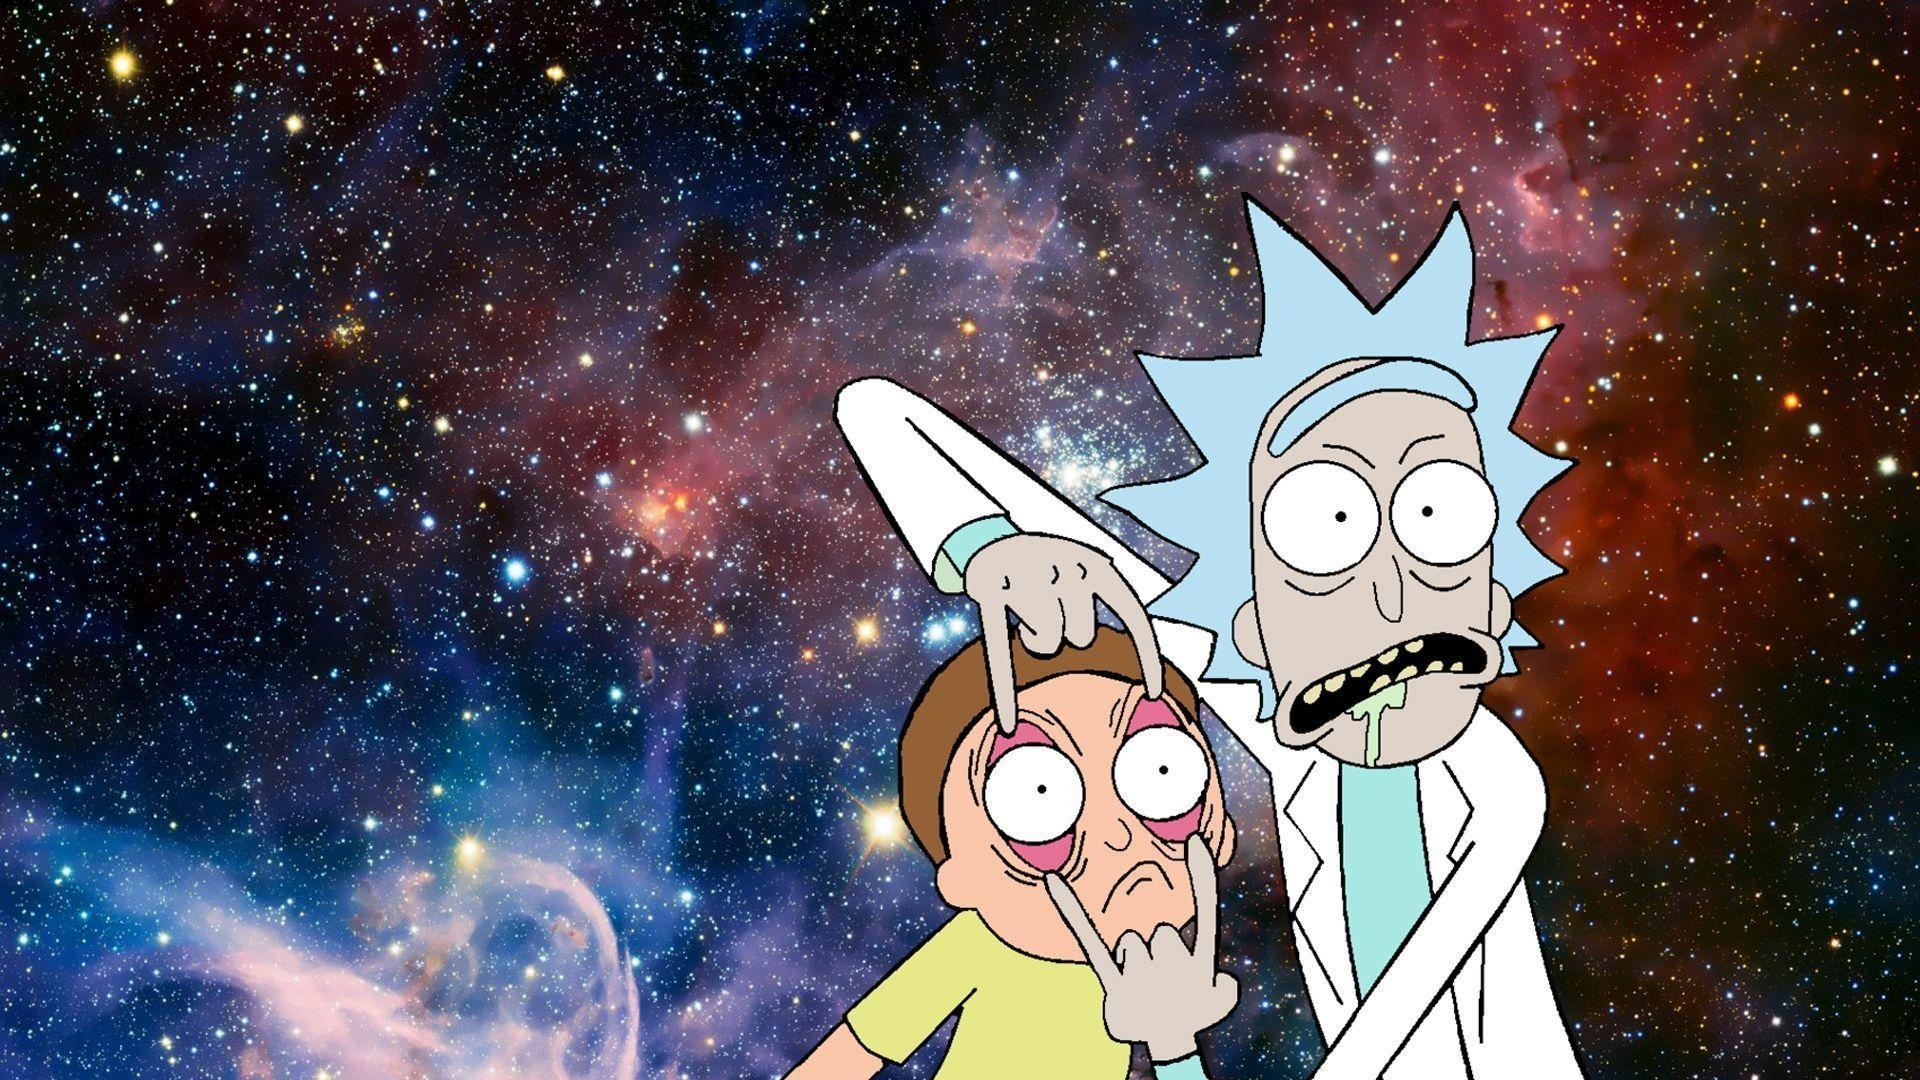 10 Top Rick And Morty Screen Saver Full Hd 19201080 For Pc Desktop